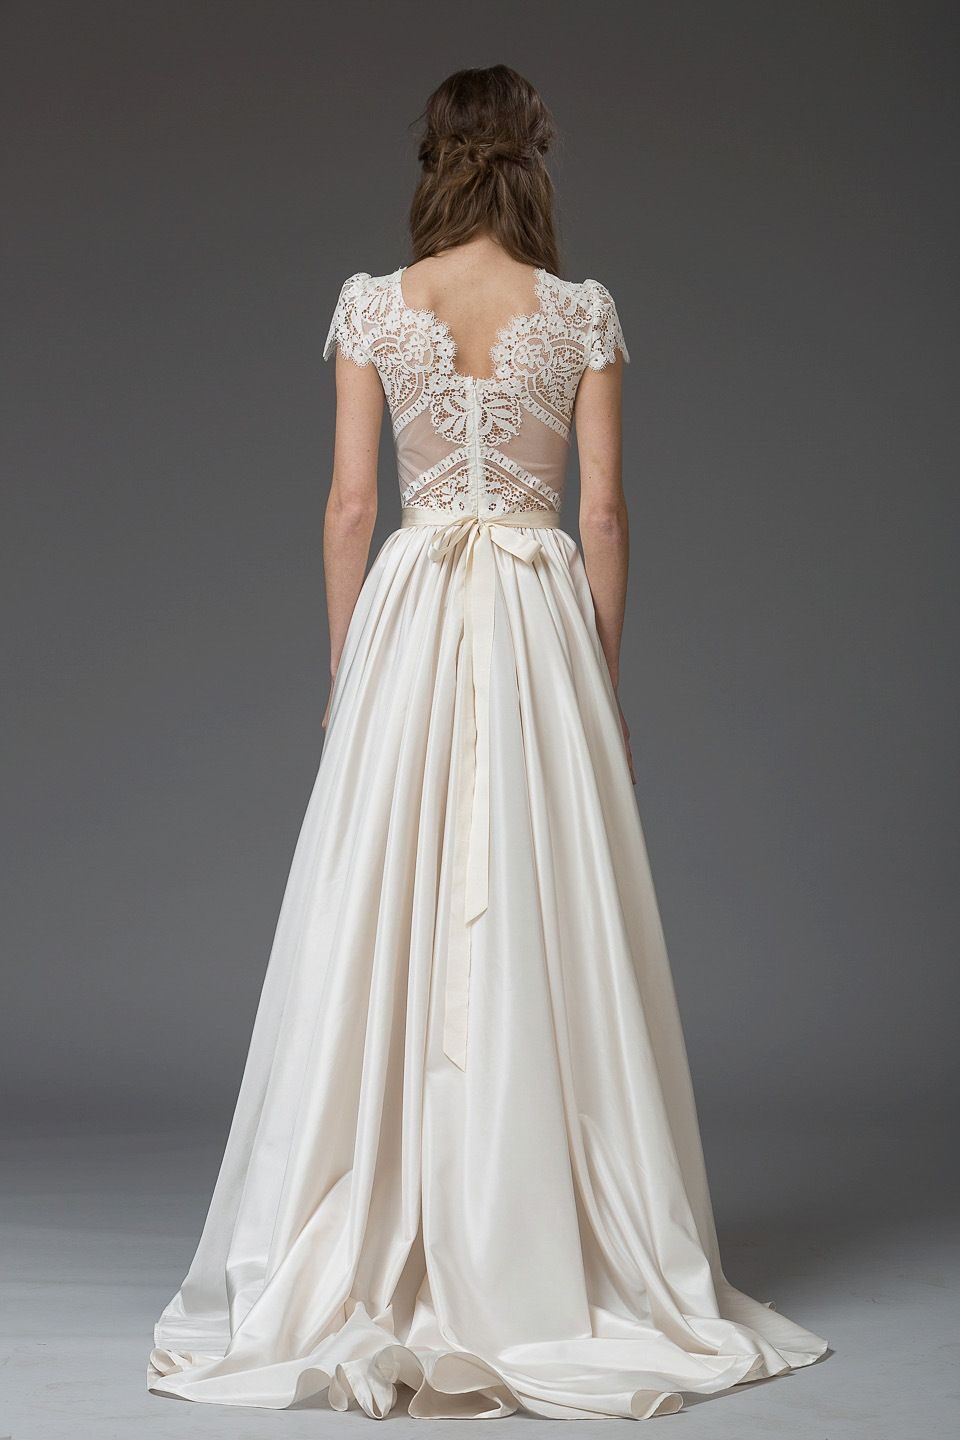 Katya katya shehurina new romantic u whimsical wedding gowns